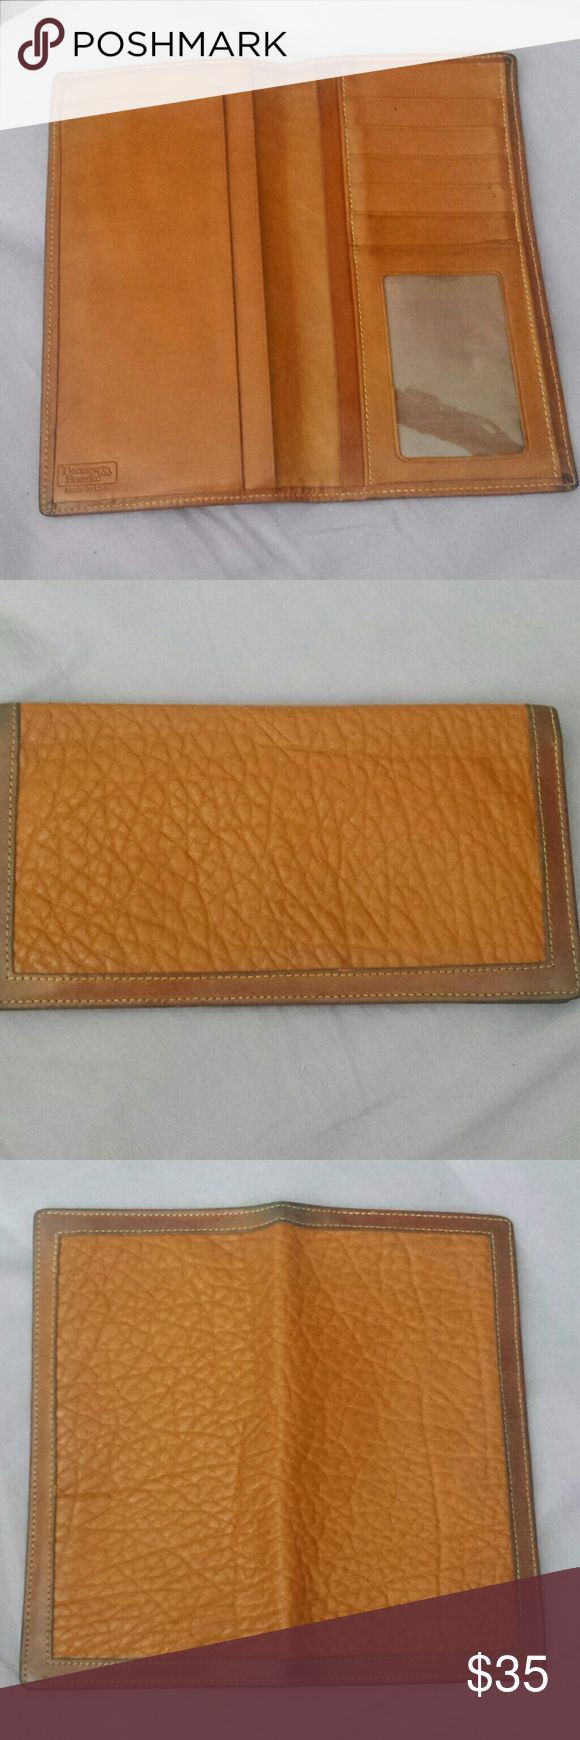 RARE mens DOONEY AND BOURKE checkbook wallet Rare men's checkbook wallet by Dooney and Bourke. Identification slot and 5 slots for cards, divided compartment for cash and receipts. In good shape, a little darkening on trim, minor pen marks. See pics Dooney & Bourke Bags Wallets